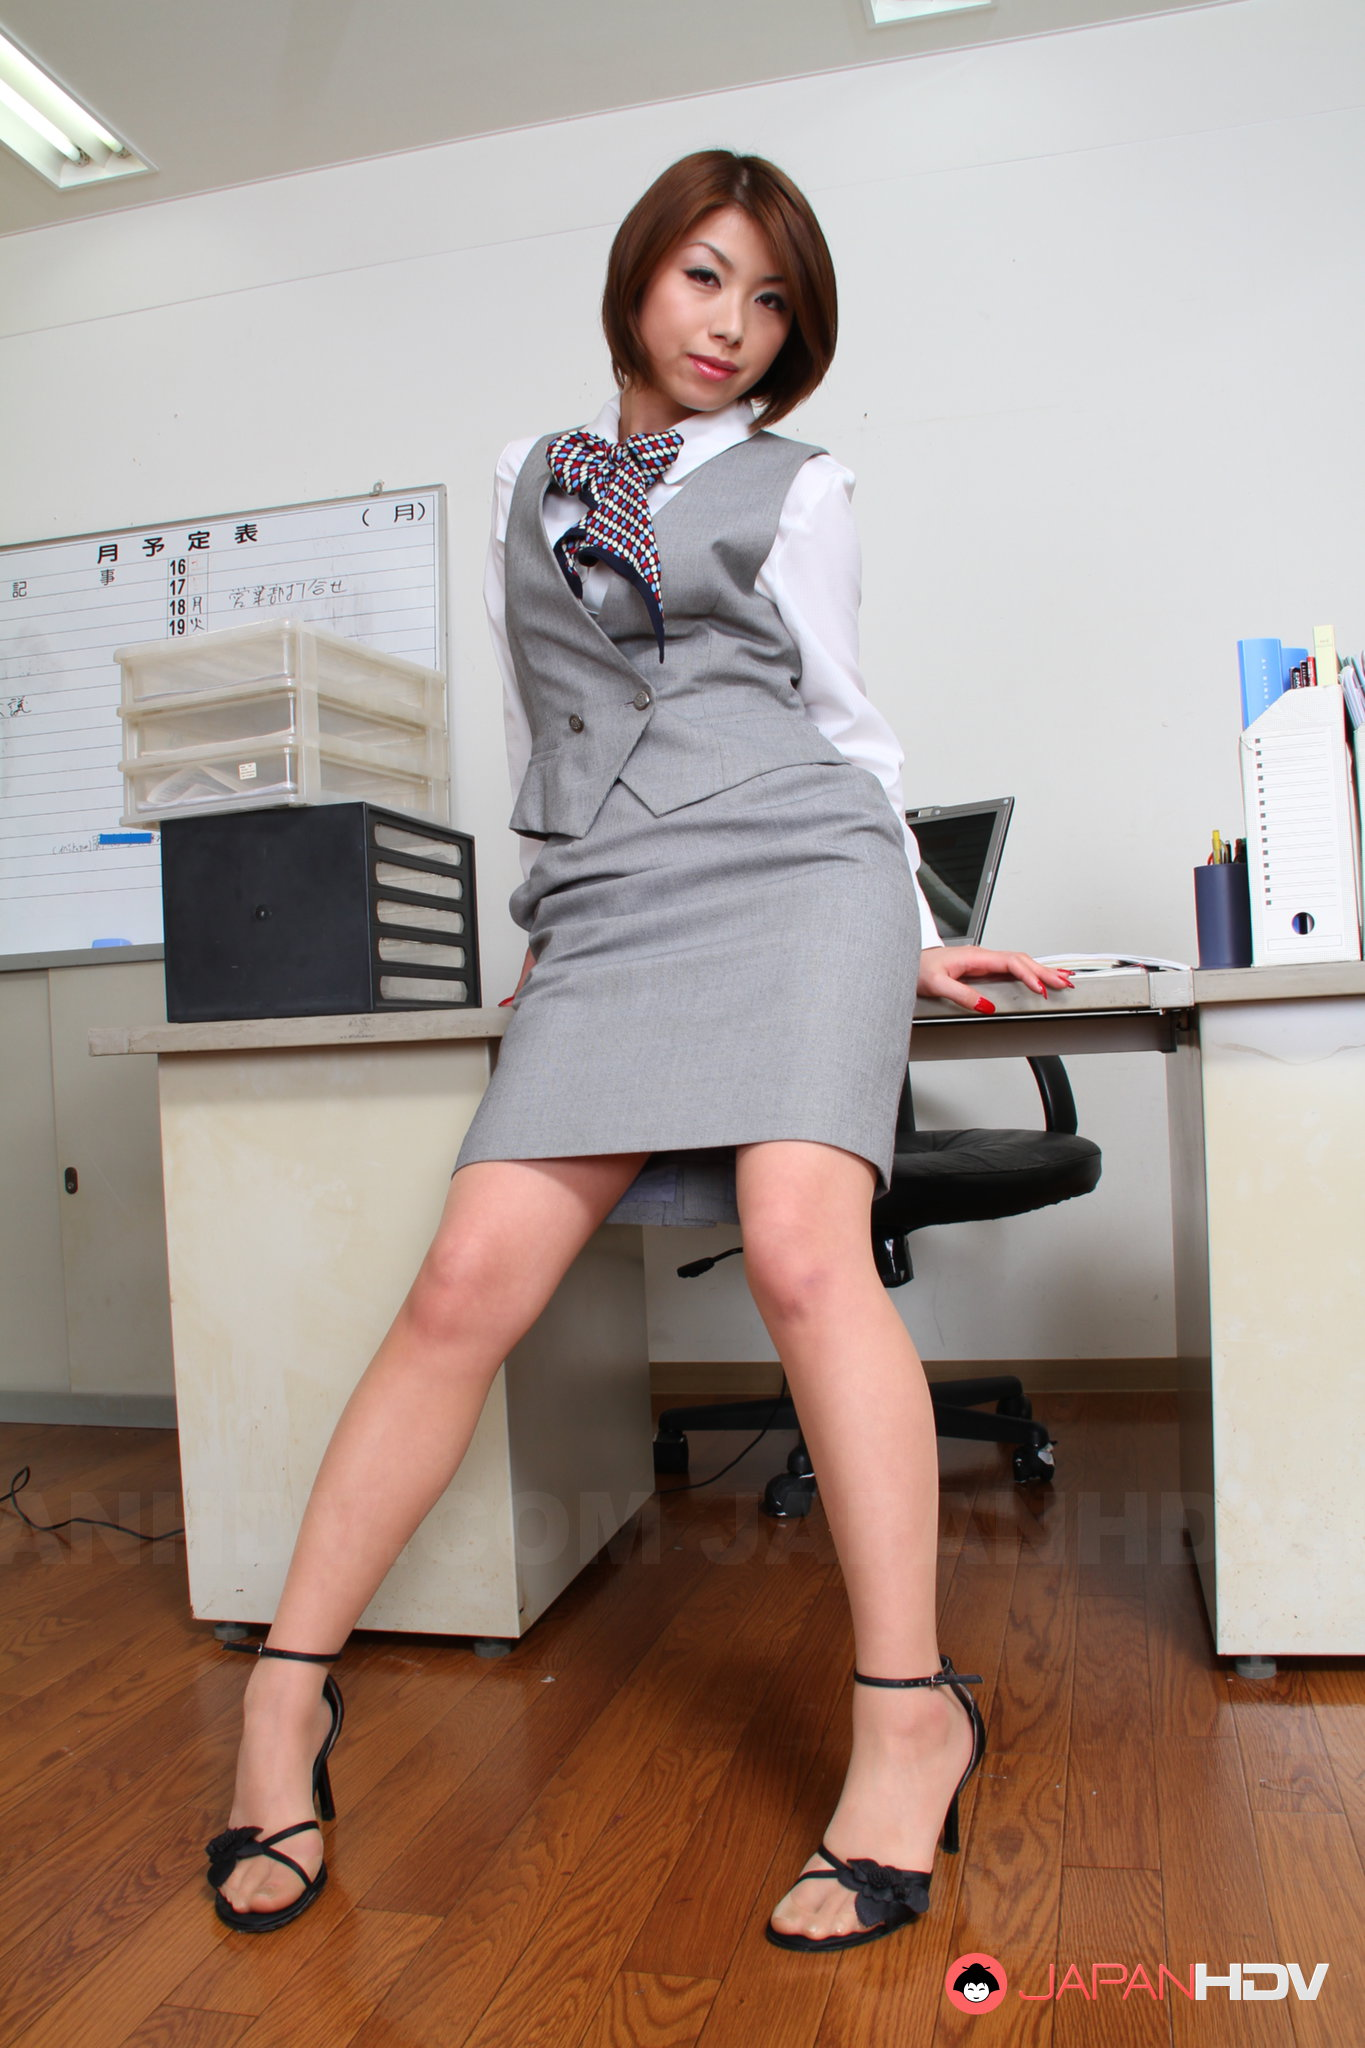 Asian girls in nylons photo gallery-9020